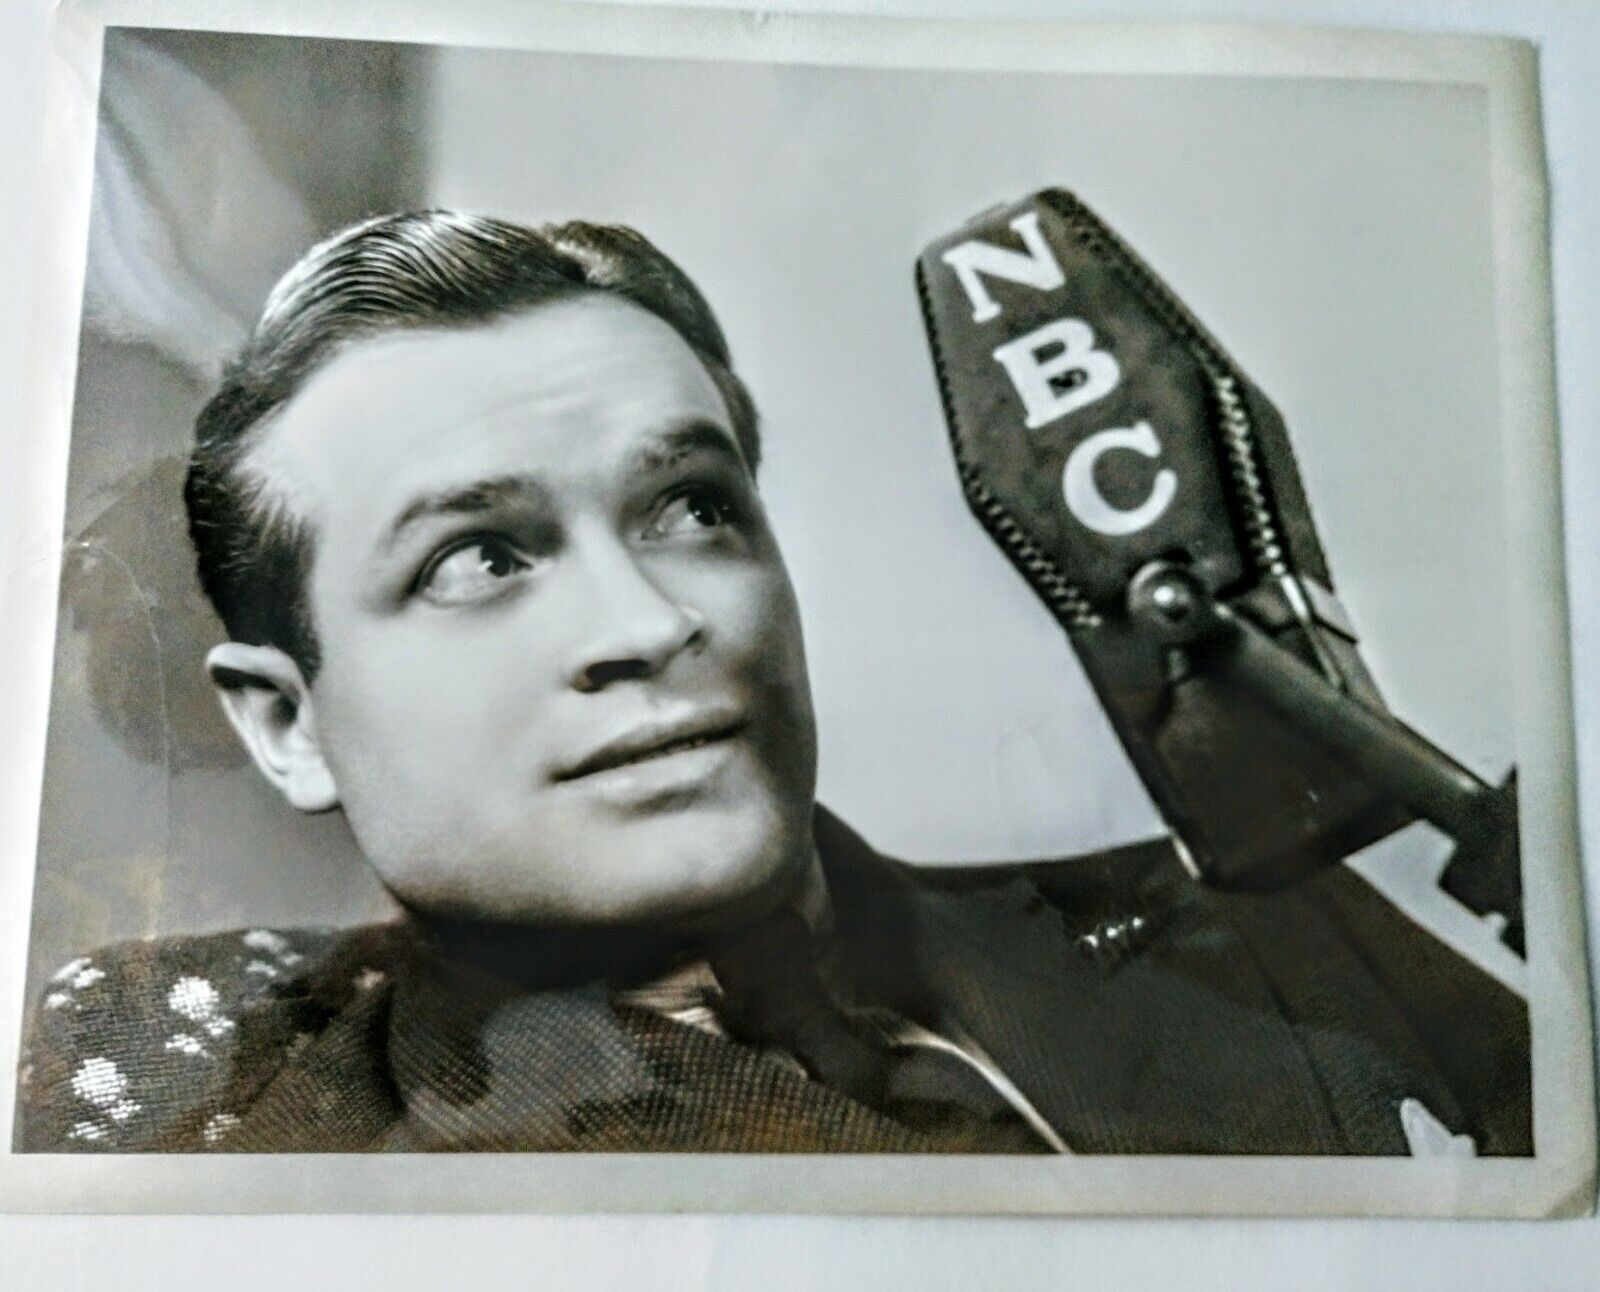 Bob Hope 1939 Publicity Photo With NBC Microphone. - $25.00